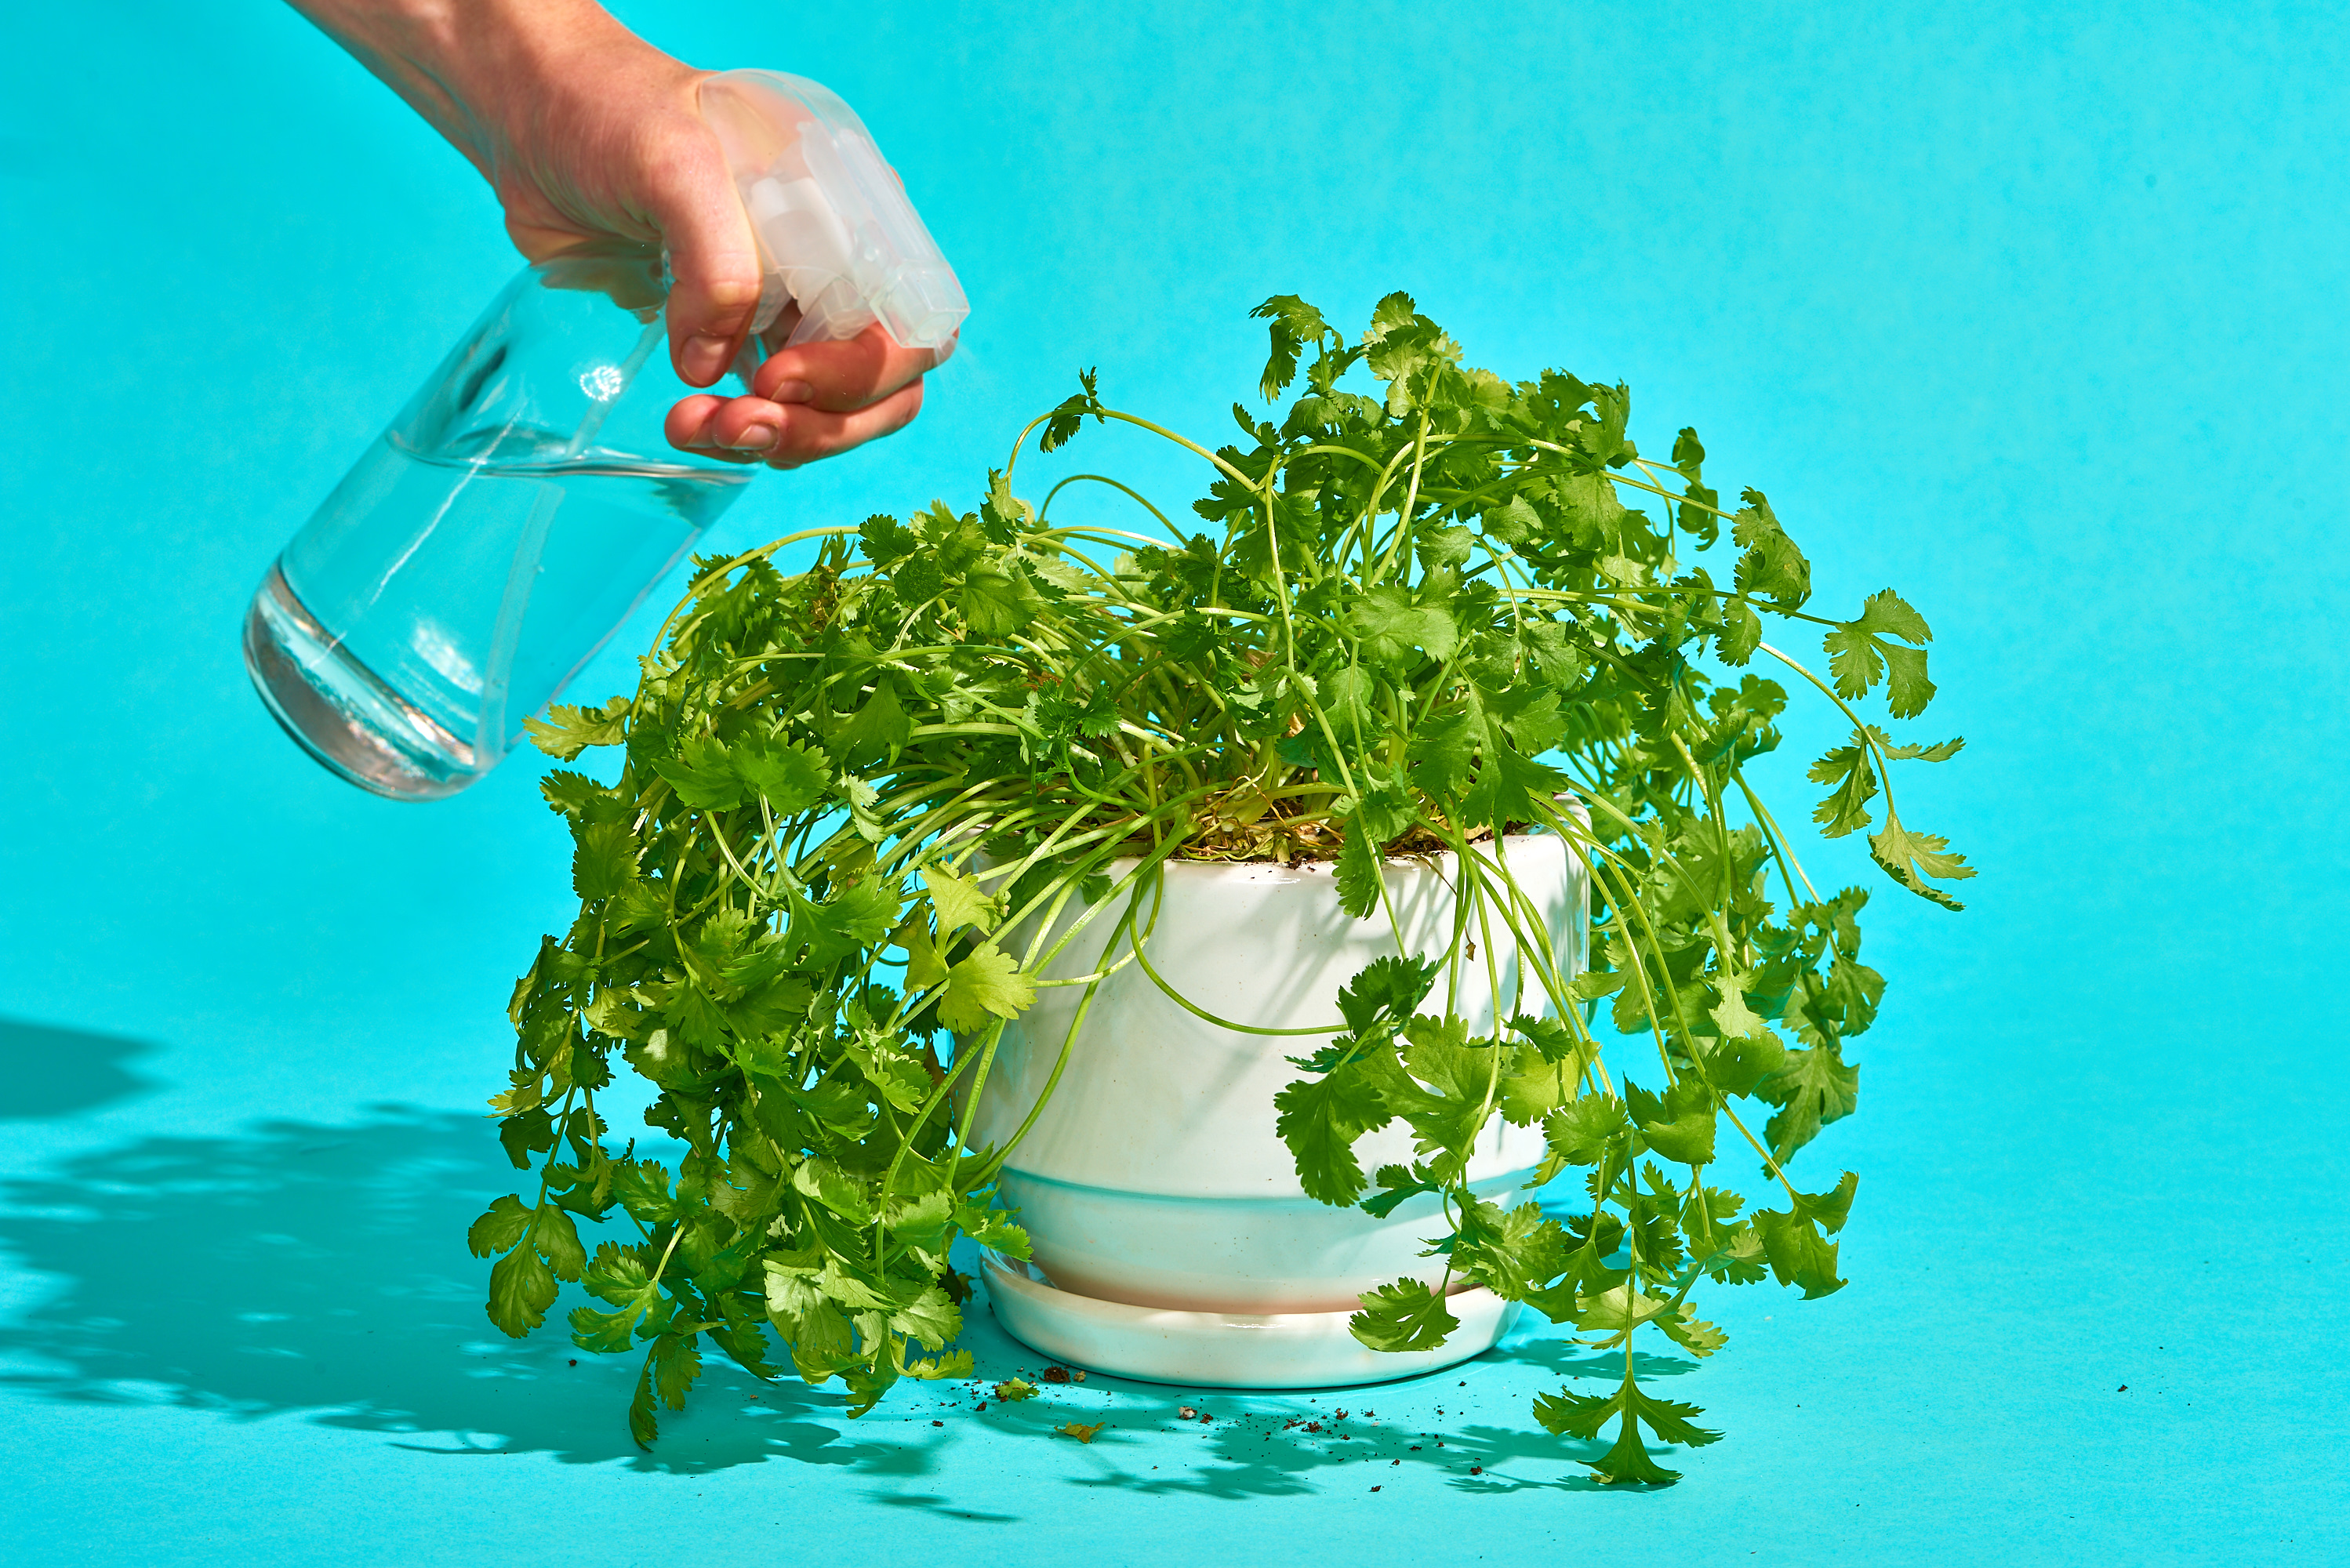 Transfer Your Plant into Container